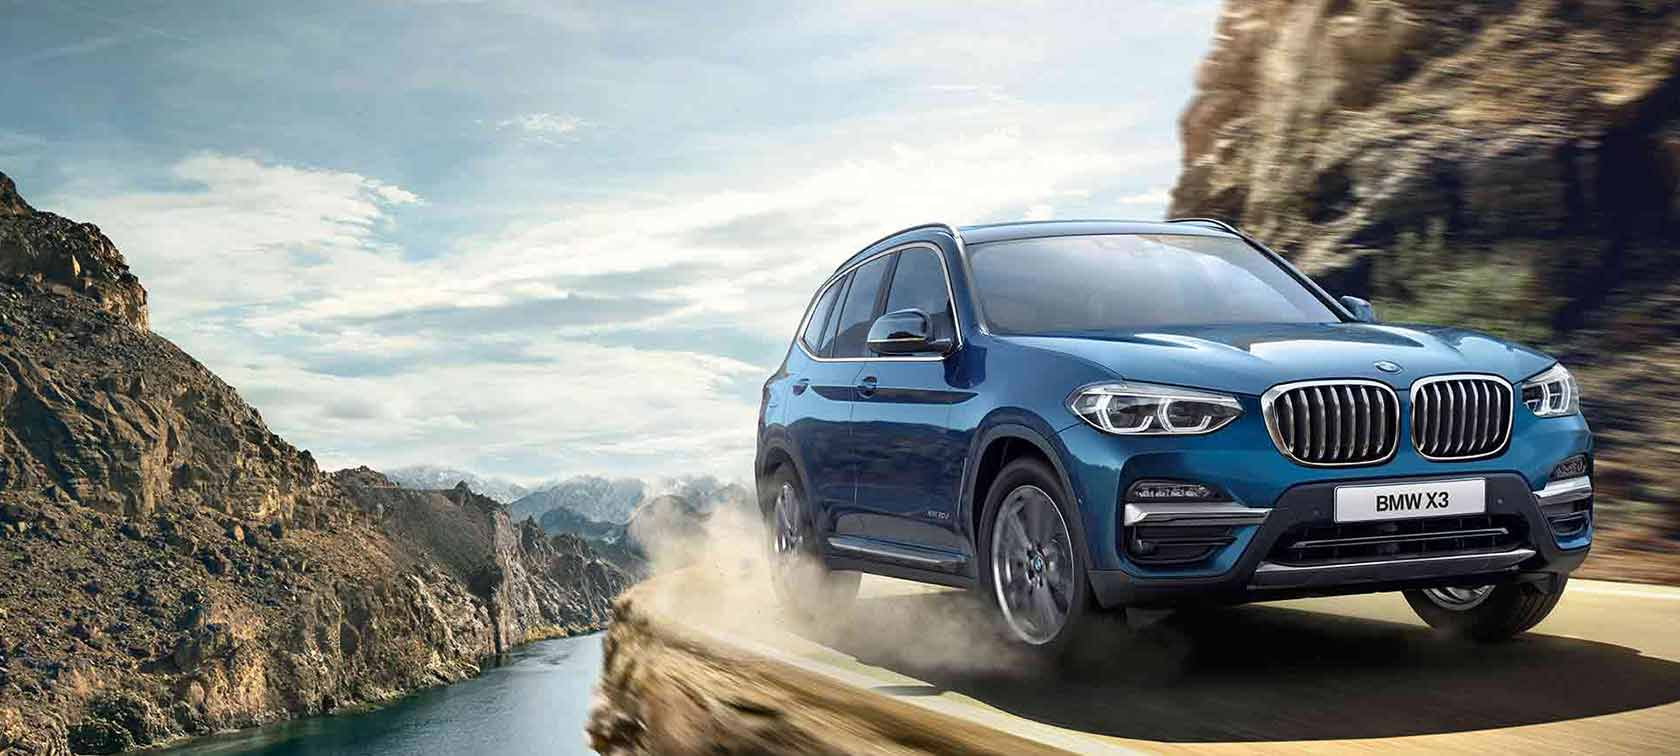 The BMW X3 SERIES